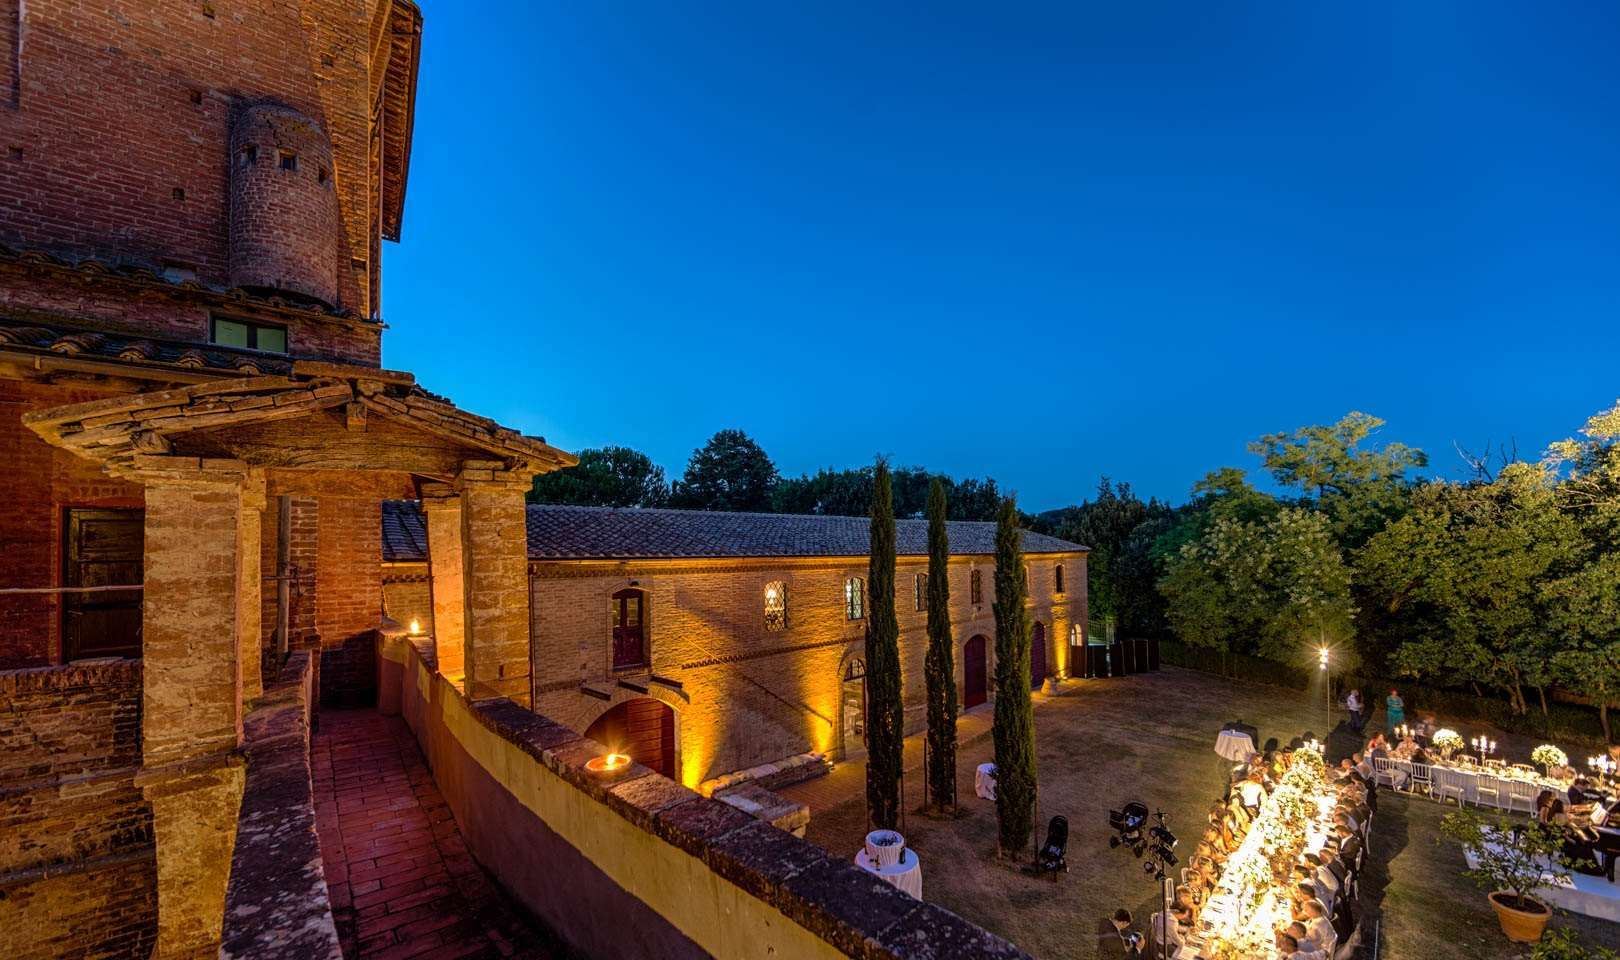 castello di san fabiano charming and romantic country chic venue for weddings and events near siena, location for wedding with large outdoor and indoor spaces and gardens